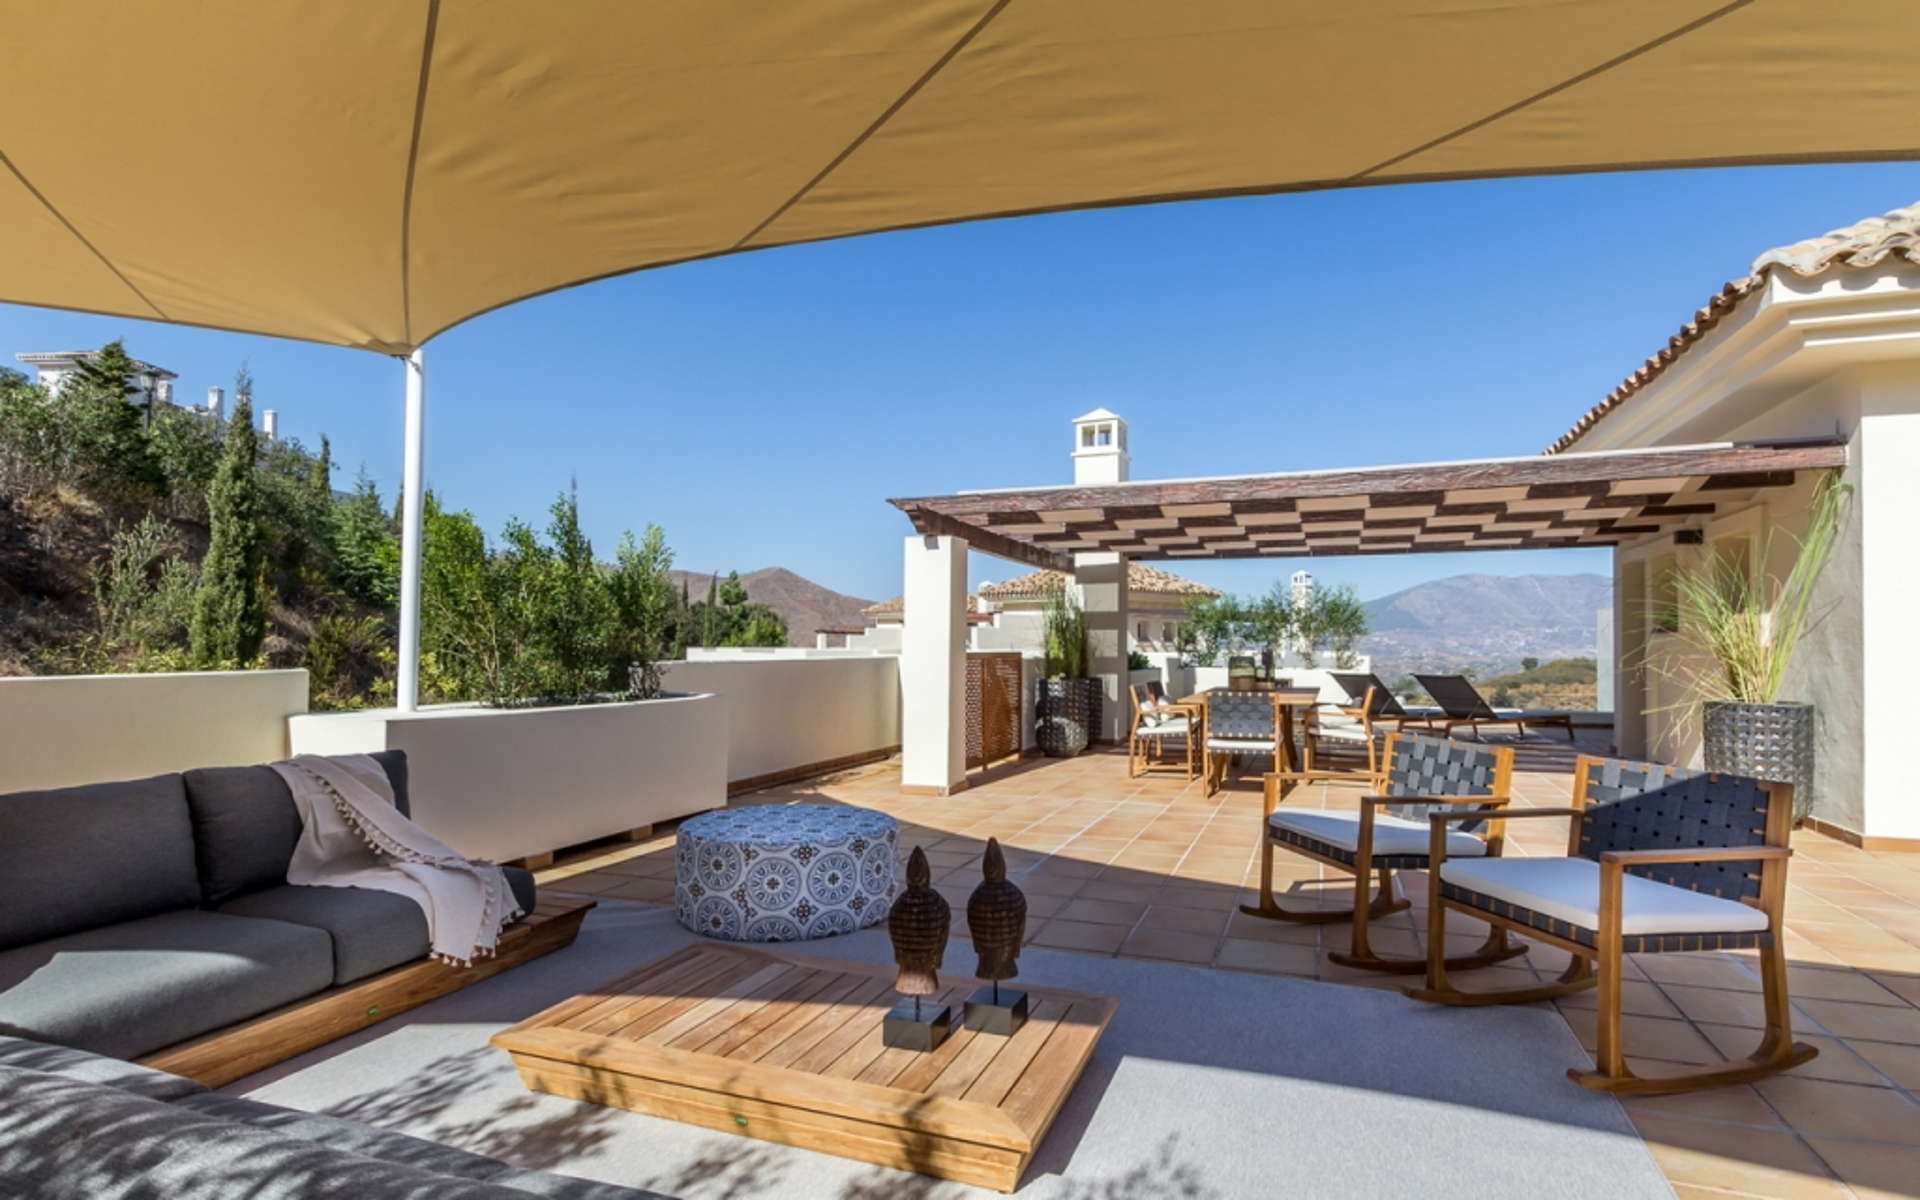 The Oakhill apartment in Sierra de las Nieves a UNESCO Biosphere Reserve near Marbella